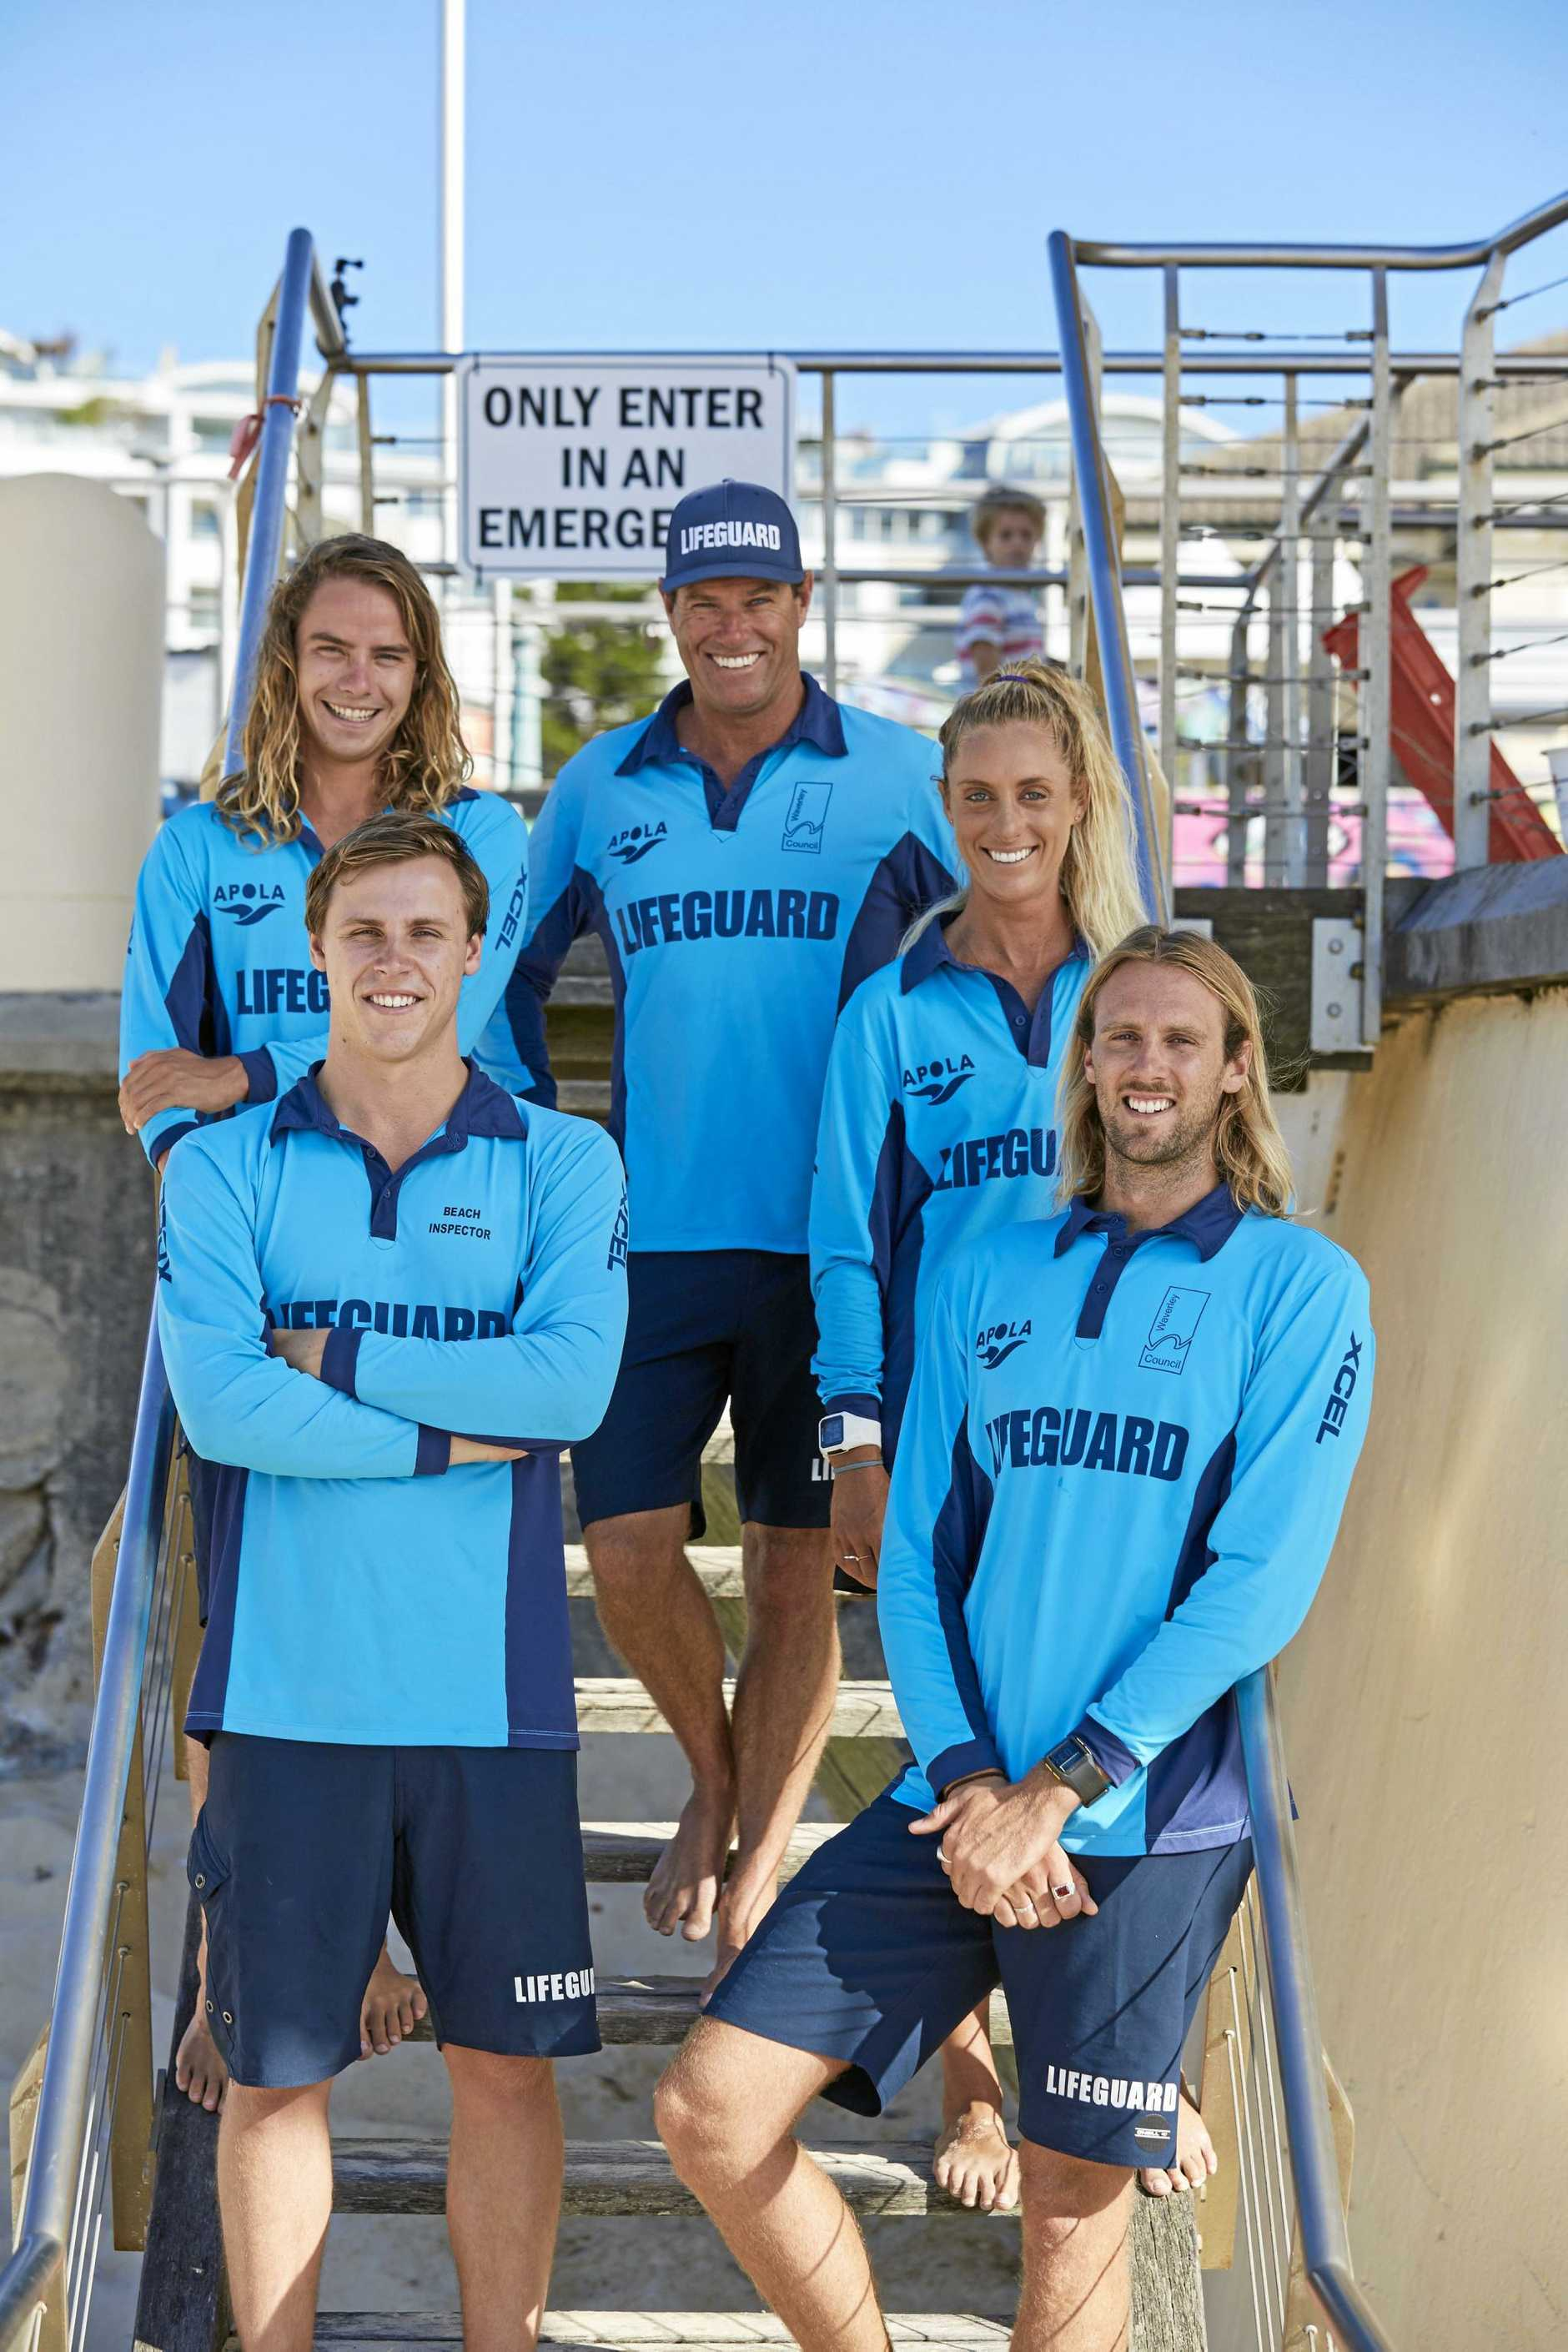 Joel and Juliana join Tommo and Wally as the new recruits on the new season of Bondi Rescue, led by head lifeguard Bruce